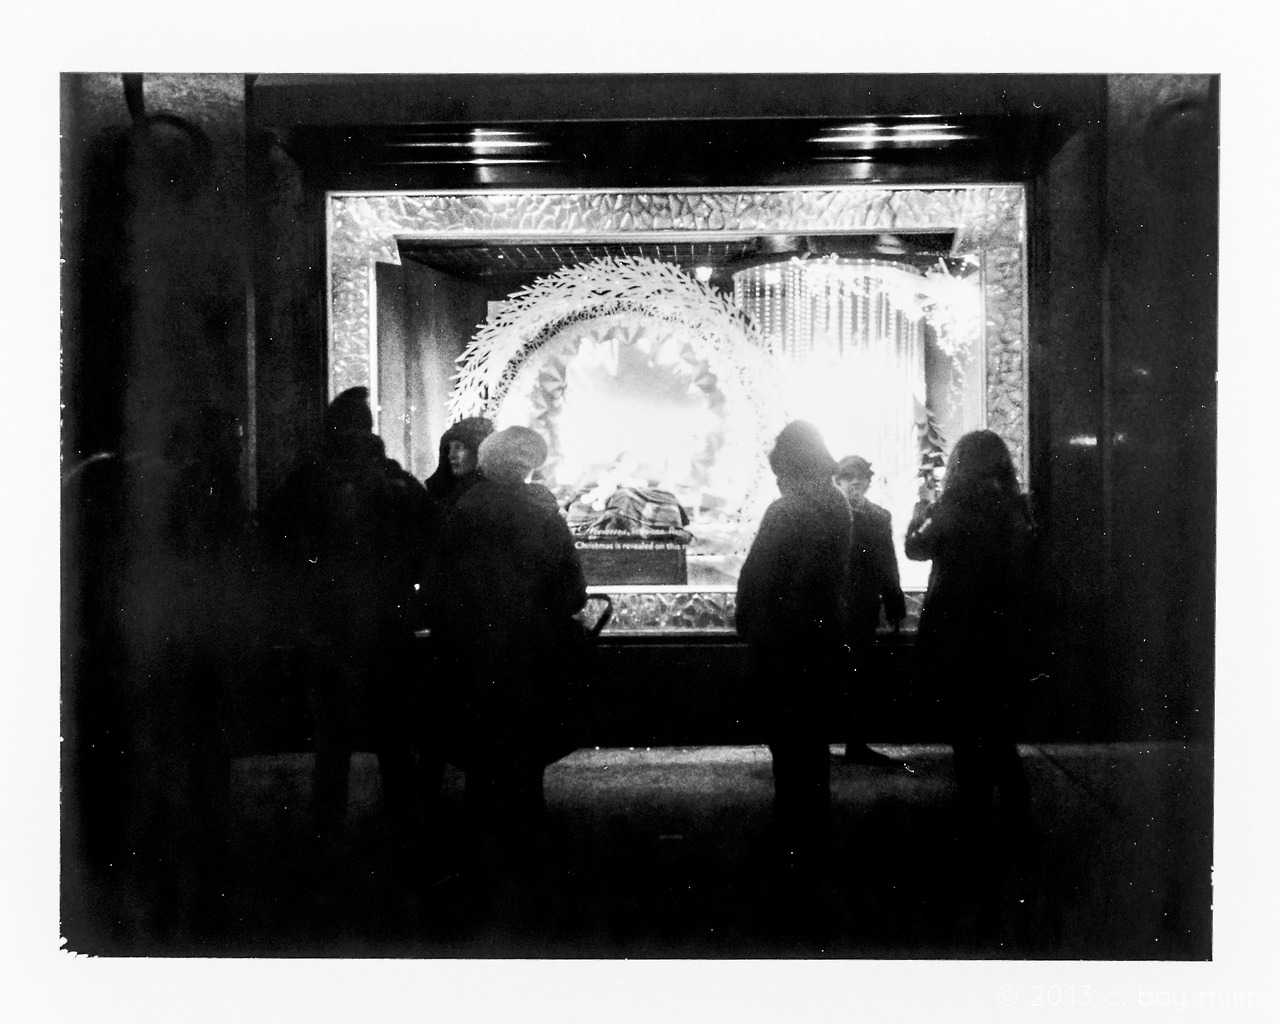 —-   onlookers gather in the nighttime around the glowing portal   they peer into and over the threshold to see a brilliant and energetic vortex of dreams looming over the sleeping body of a small boy.   his head shifts as the lights from the glittering chandelier refract and flit about as soft shines glow around the room.   a fairy fluttering about oversees the safety and comfort of the boy, as the onlookers take in the scene, and then smiling knowingly, they walk on, away, and back into the black.   —-